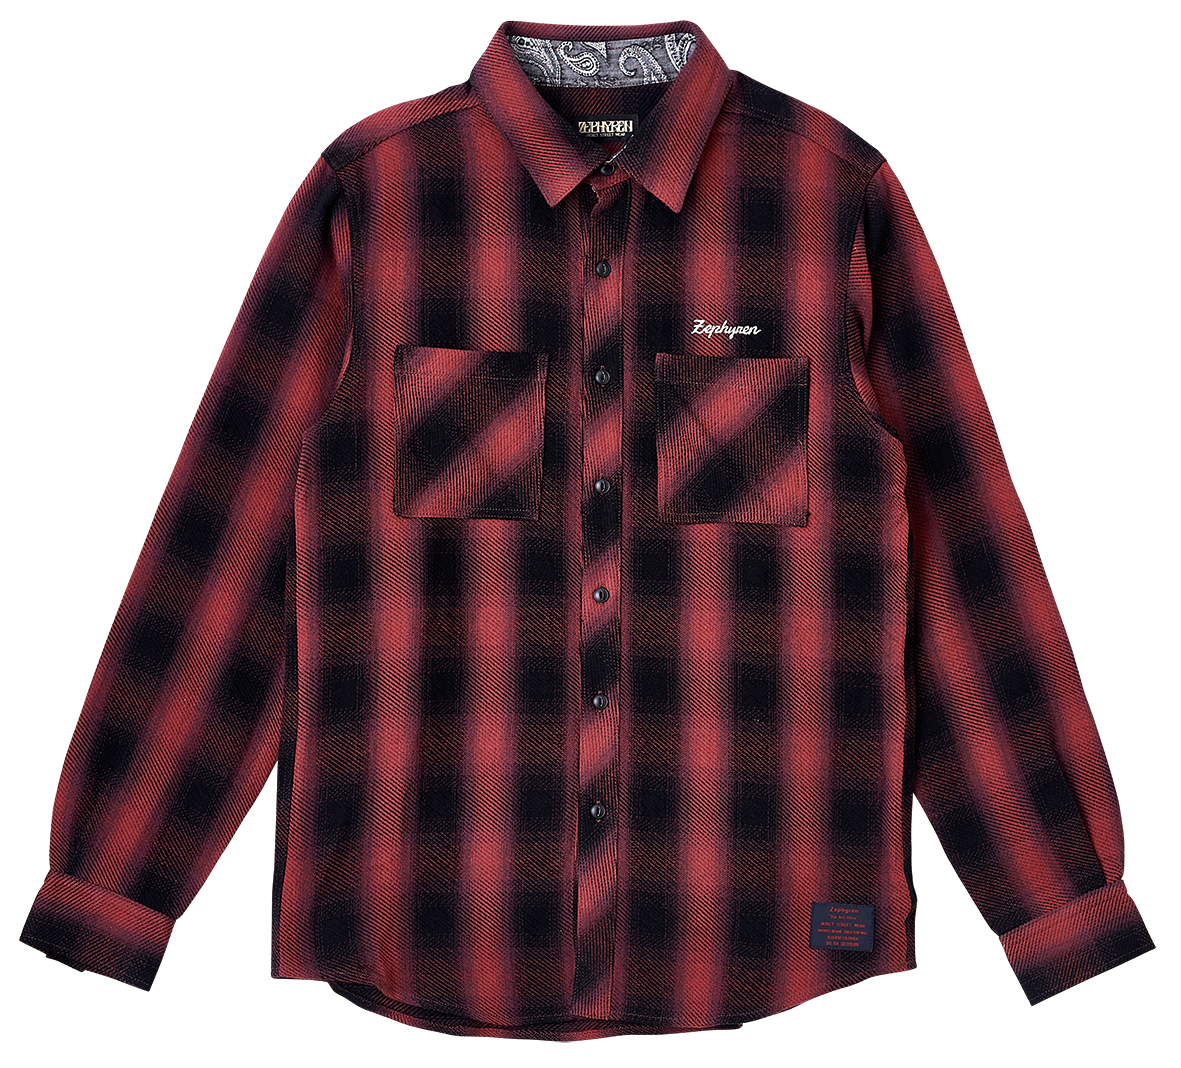 【予約商品】Zephyren(ゼファレン)CHECK SHIRT L/S - Resolve - BLACK / RED